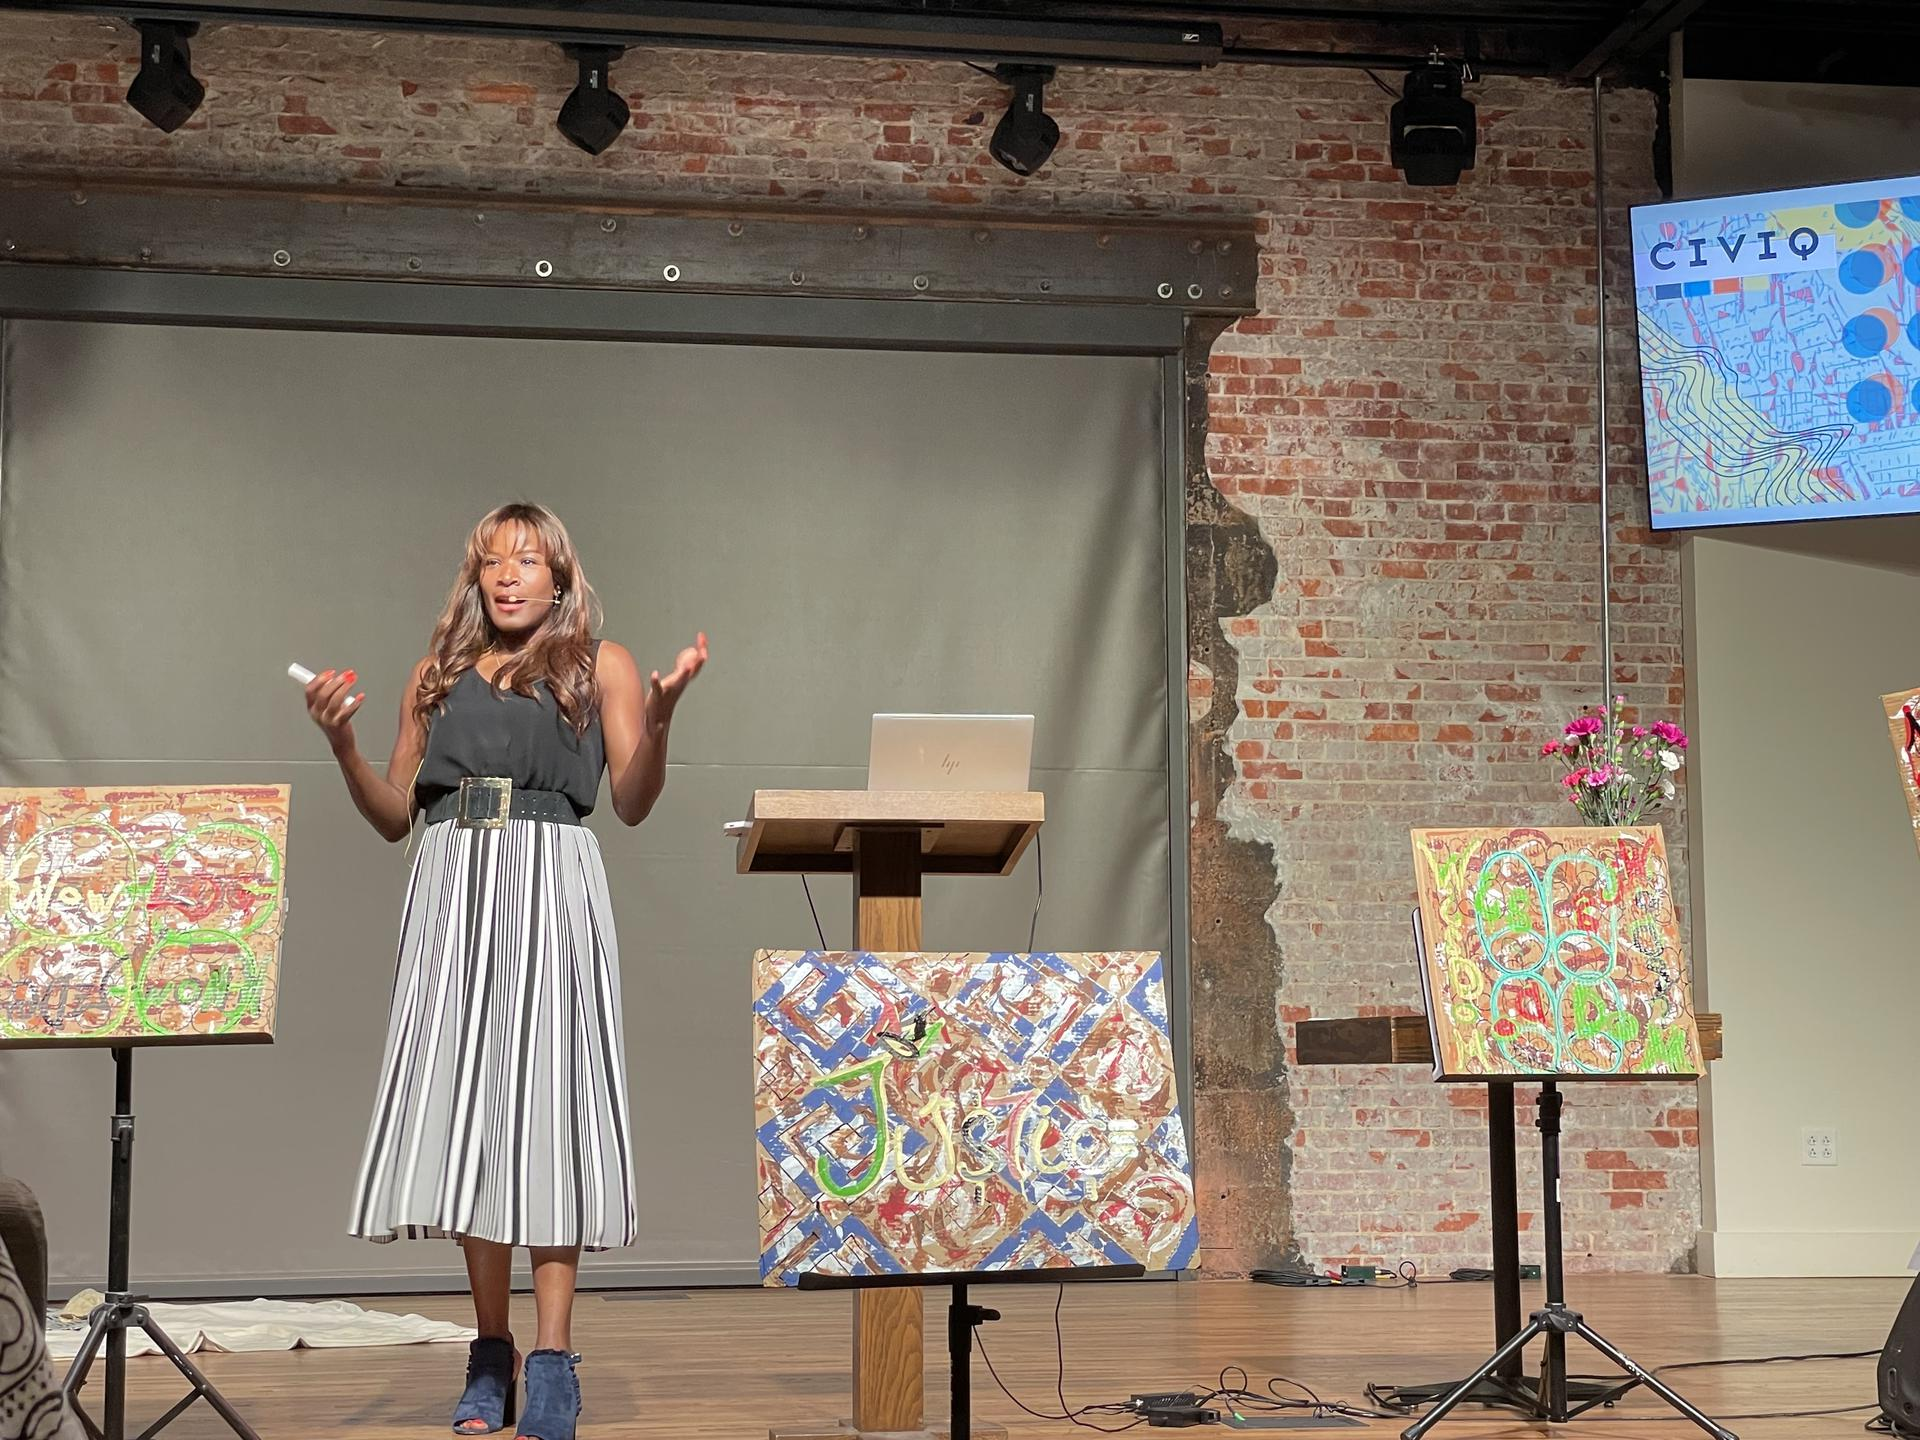 Photo of a woman standing on a stage and speaking. There are 3 painted canvases on stage with her, 2 to the right of her and 1 to the left.